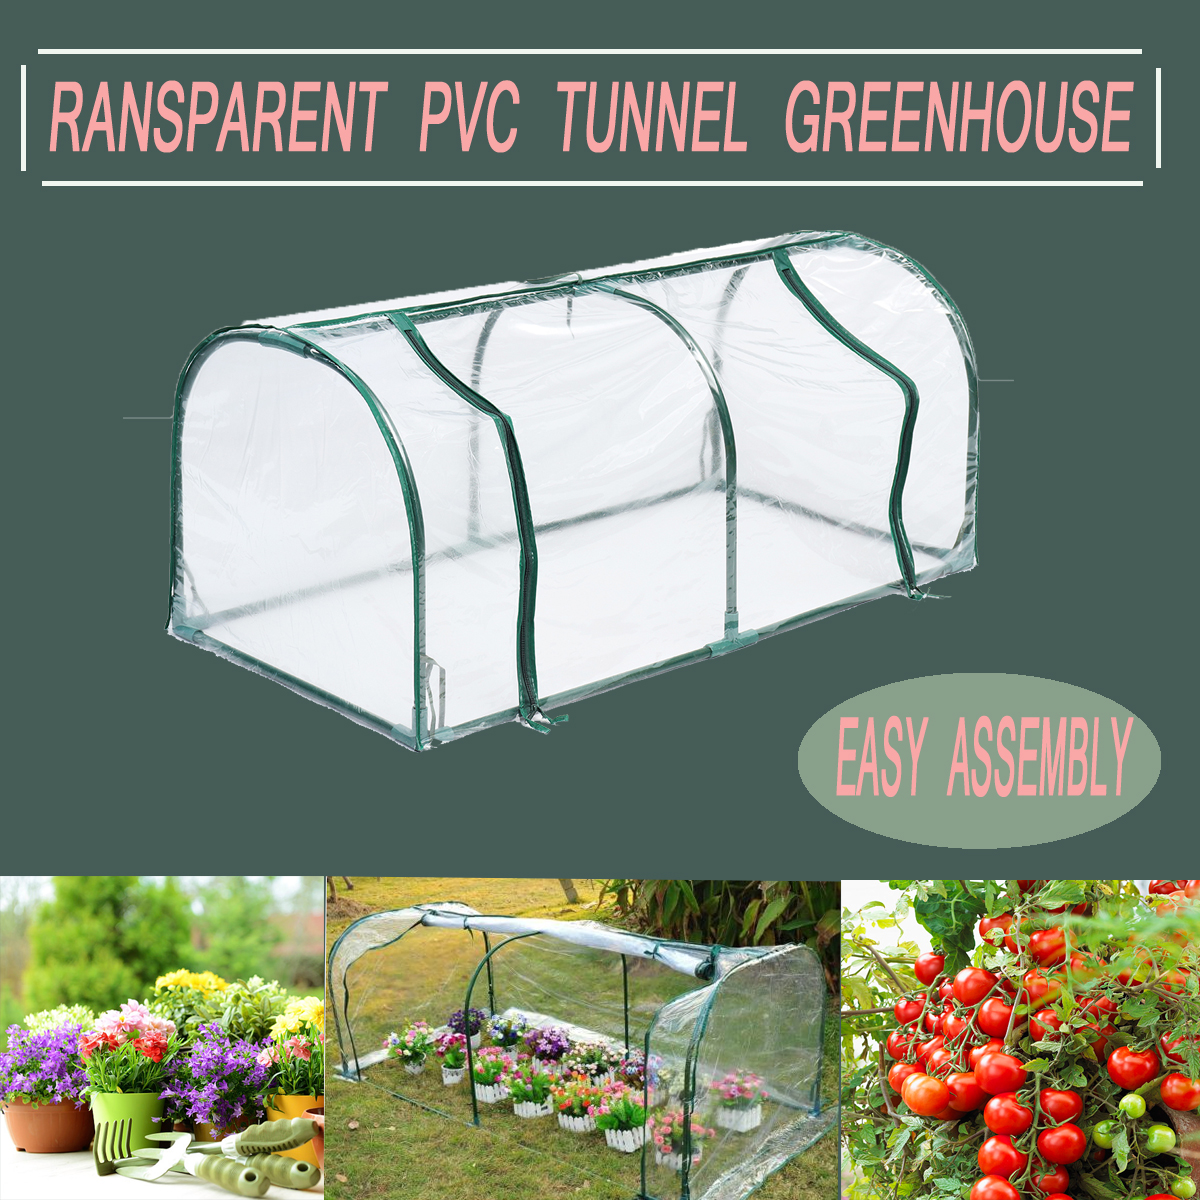 2 Sections Transparent Clear PVC Tunnel Greenhouse Green Planting Grow Box House Steel Frame